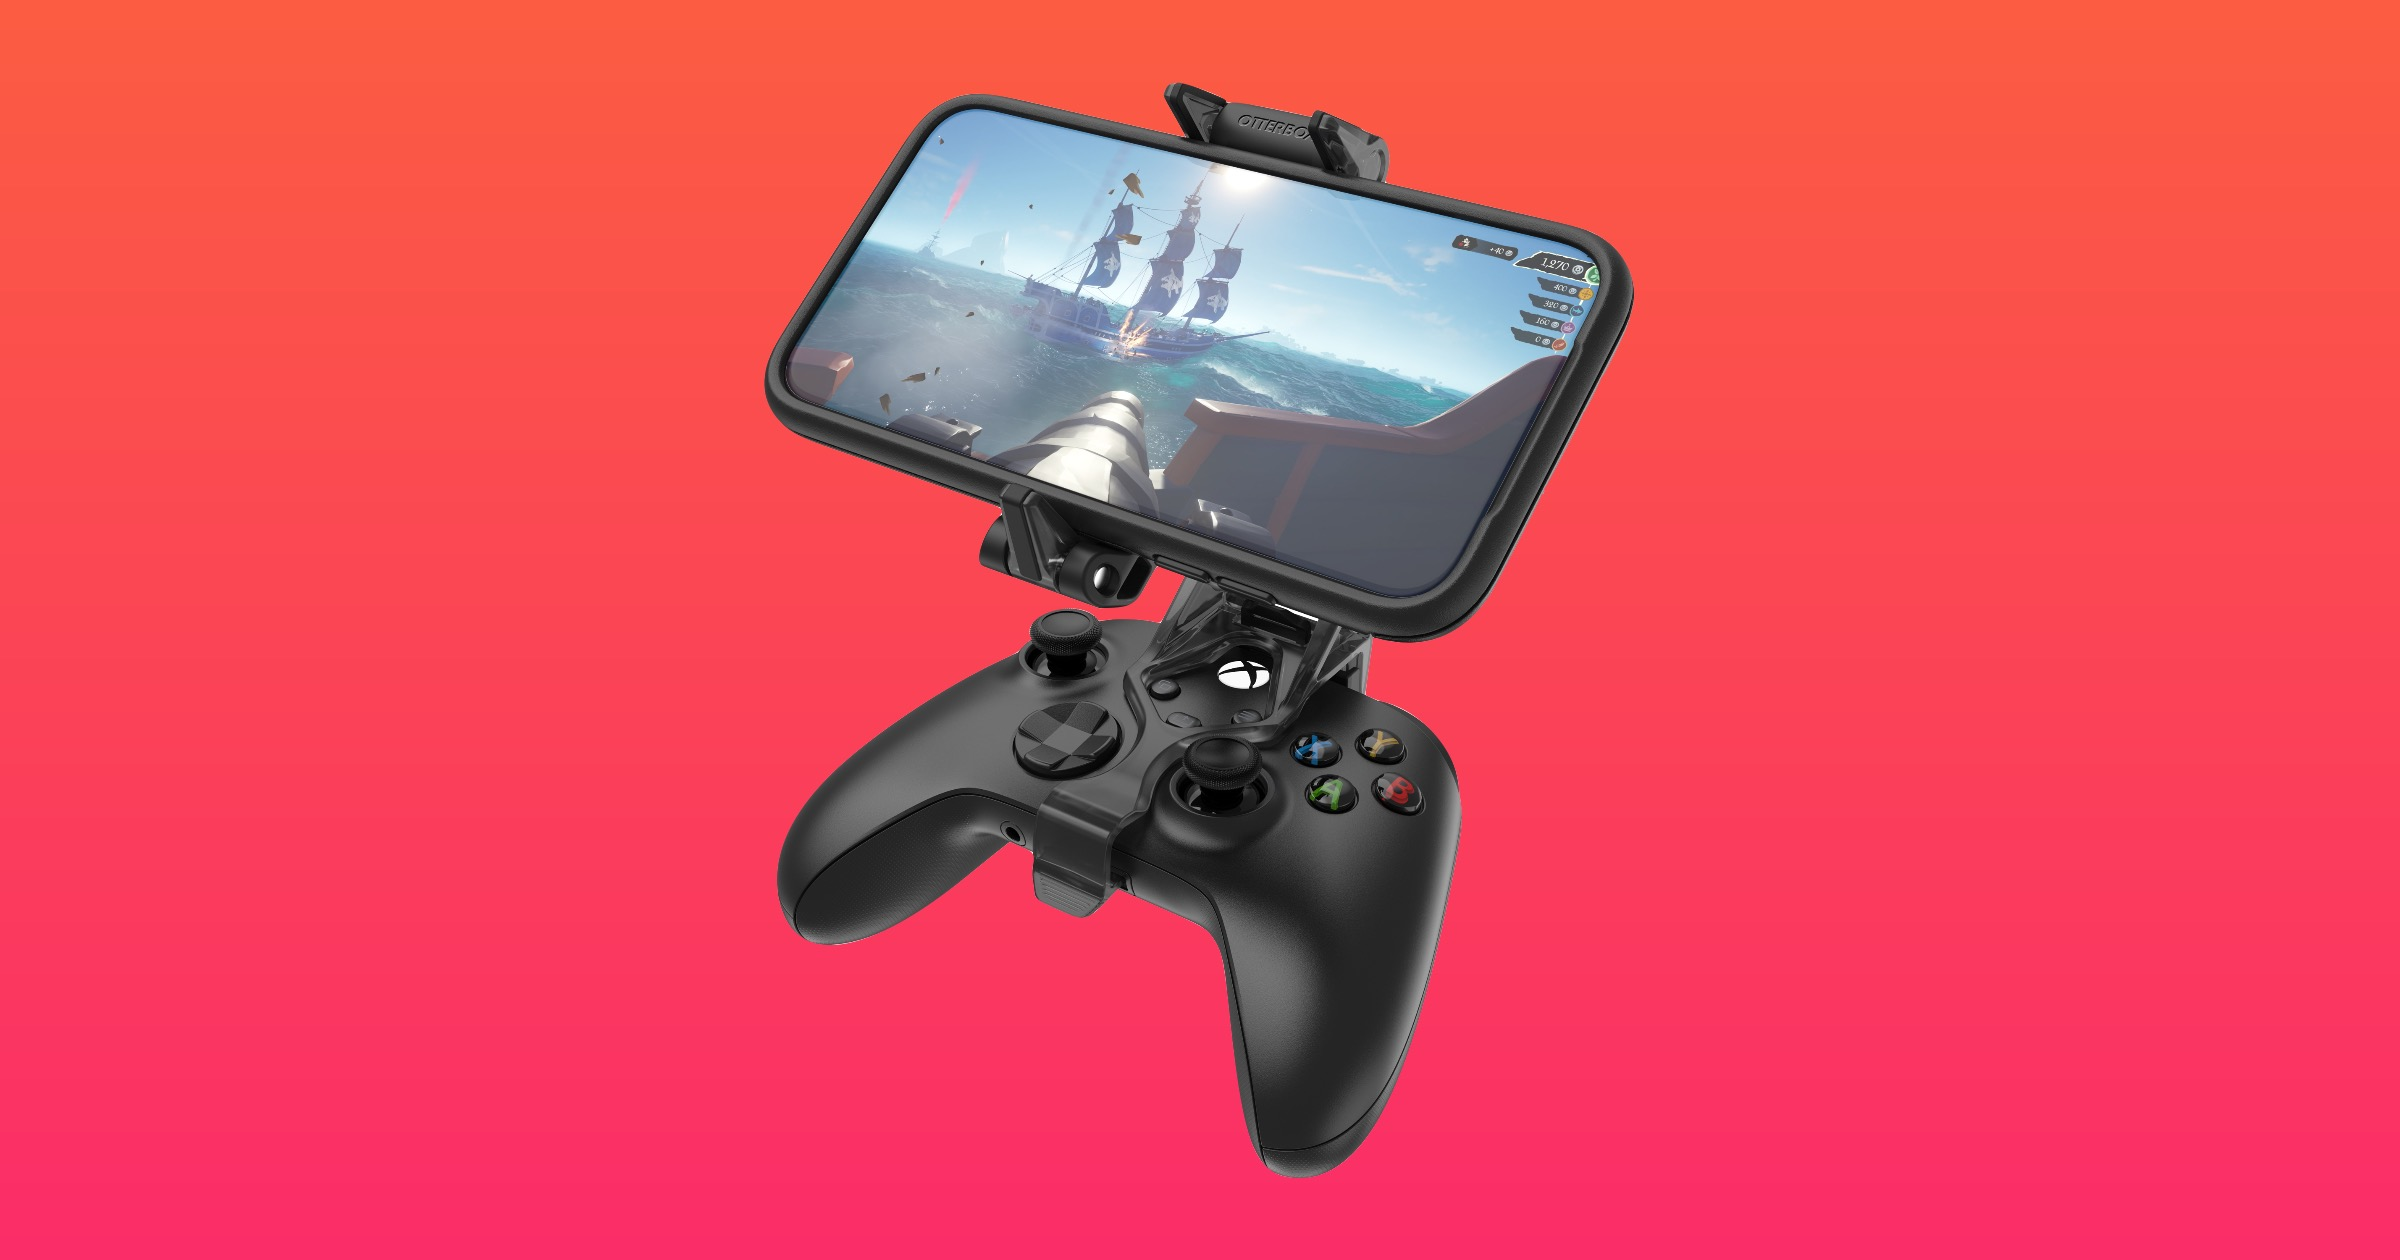 Preorder Otterbox Gaming Accessories That Ship in February